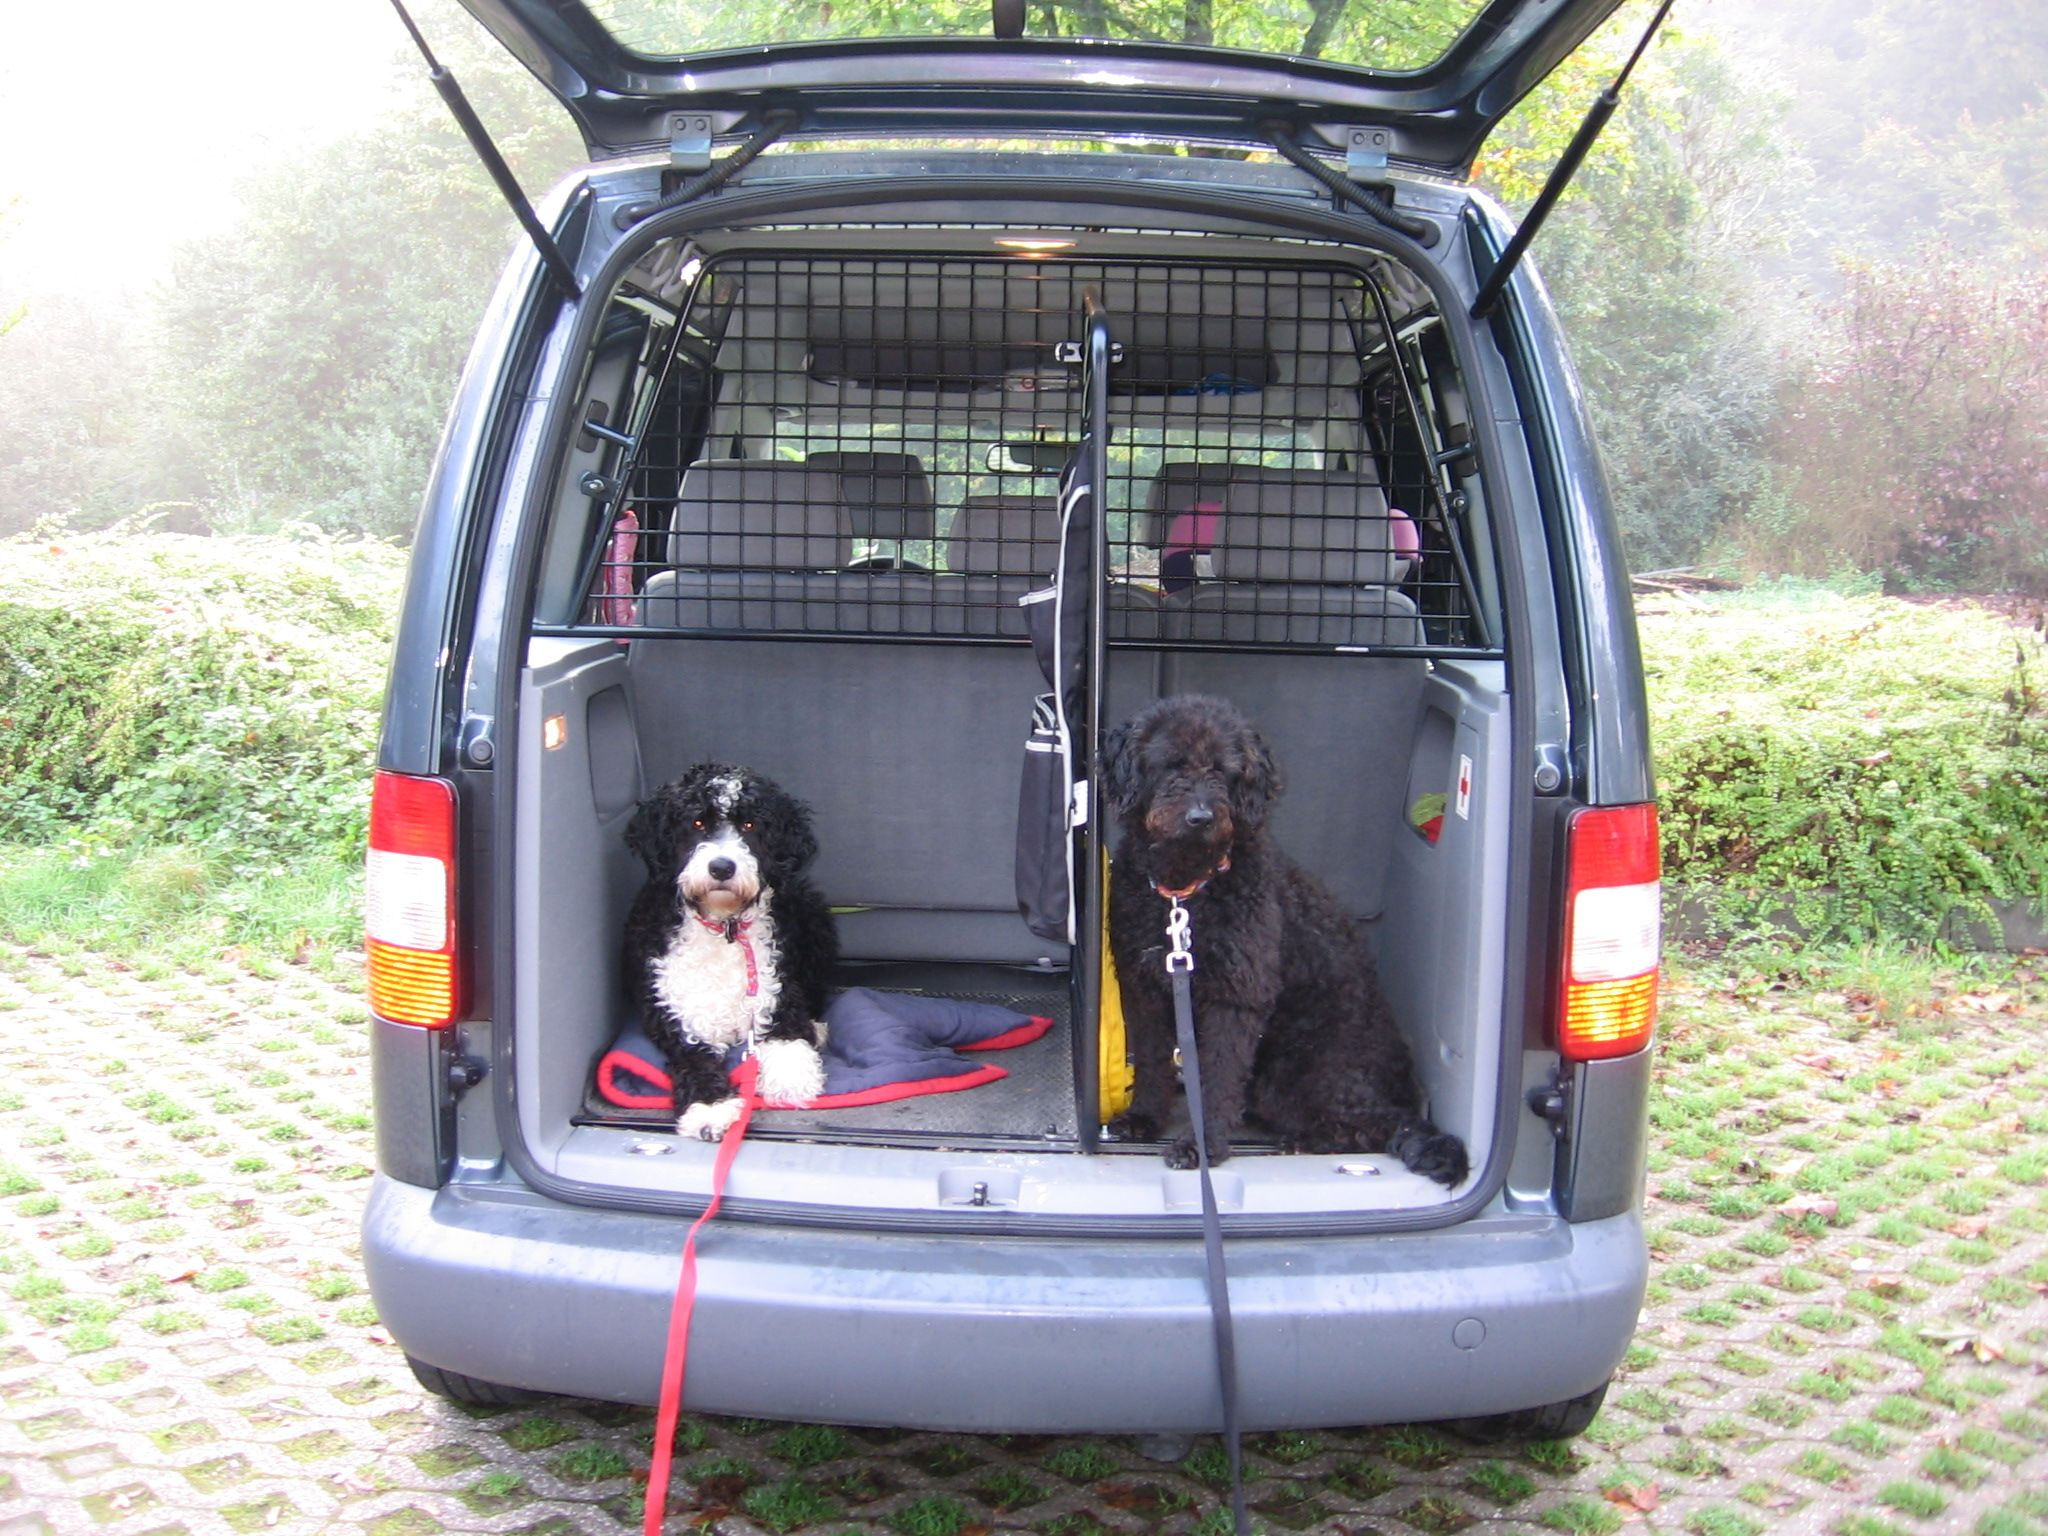 gro er hund und kofferraum zu eng welche hundebox f r vw caravelle haustier pinterest. Black Bedroom Furniture Sets. Home Design Ideas